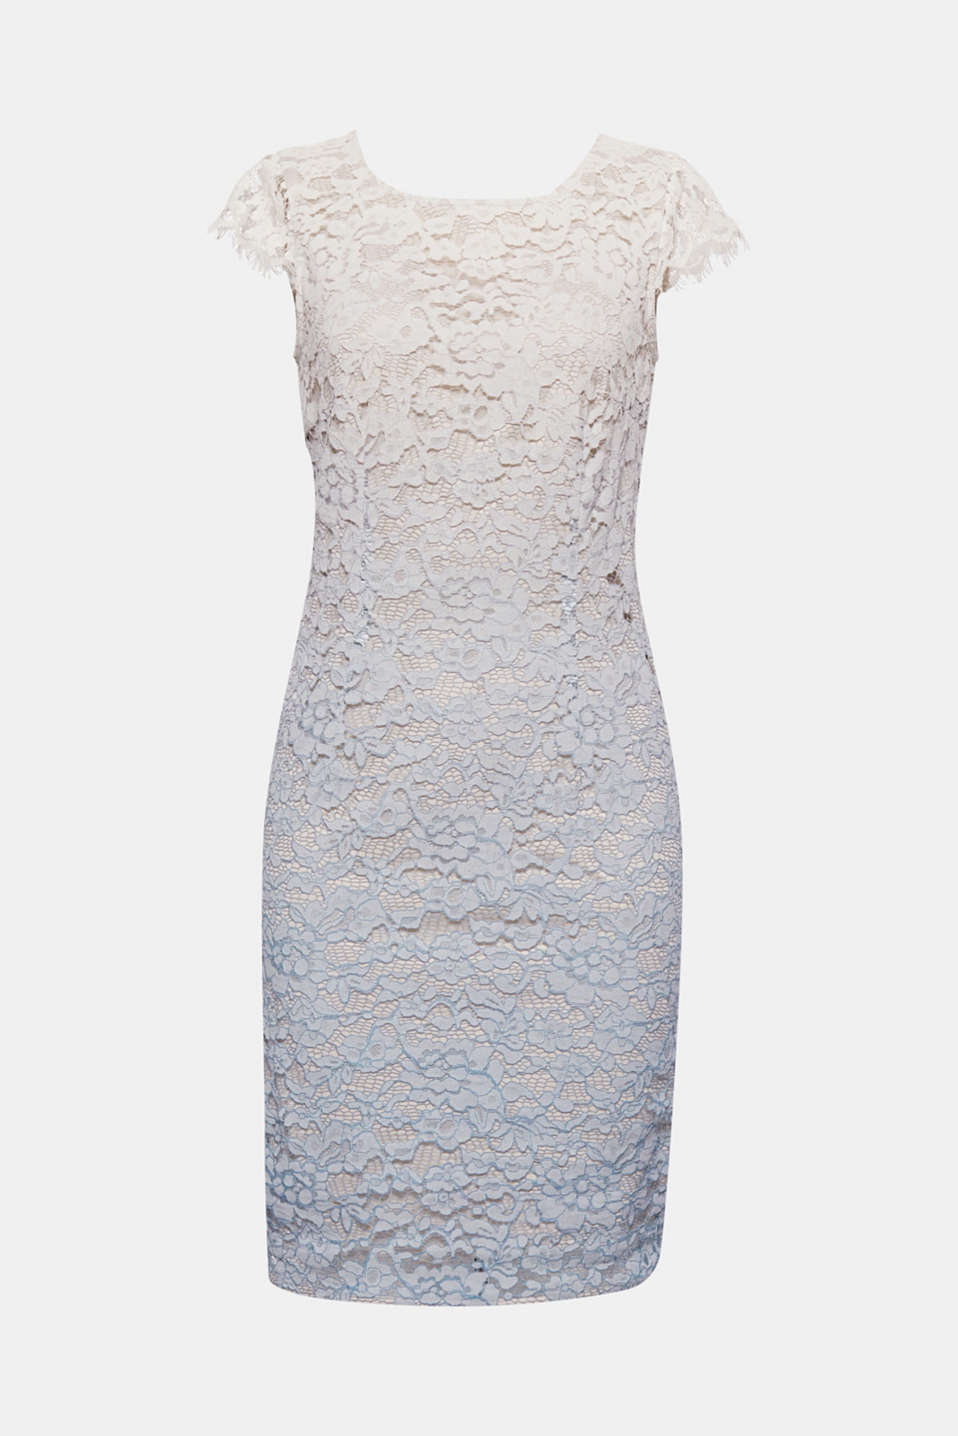 This fitted lace dress in a degradé look perfectly skims your figure!